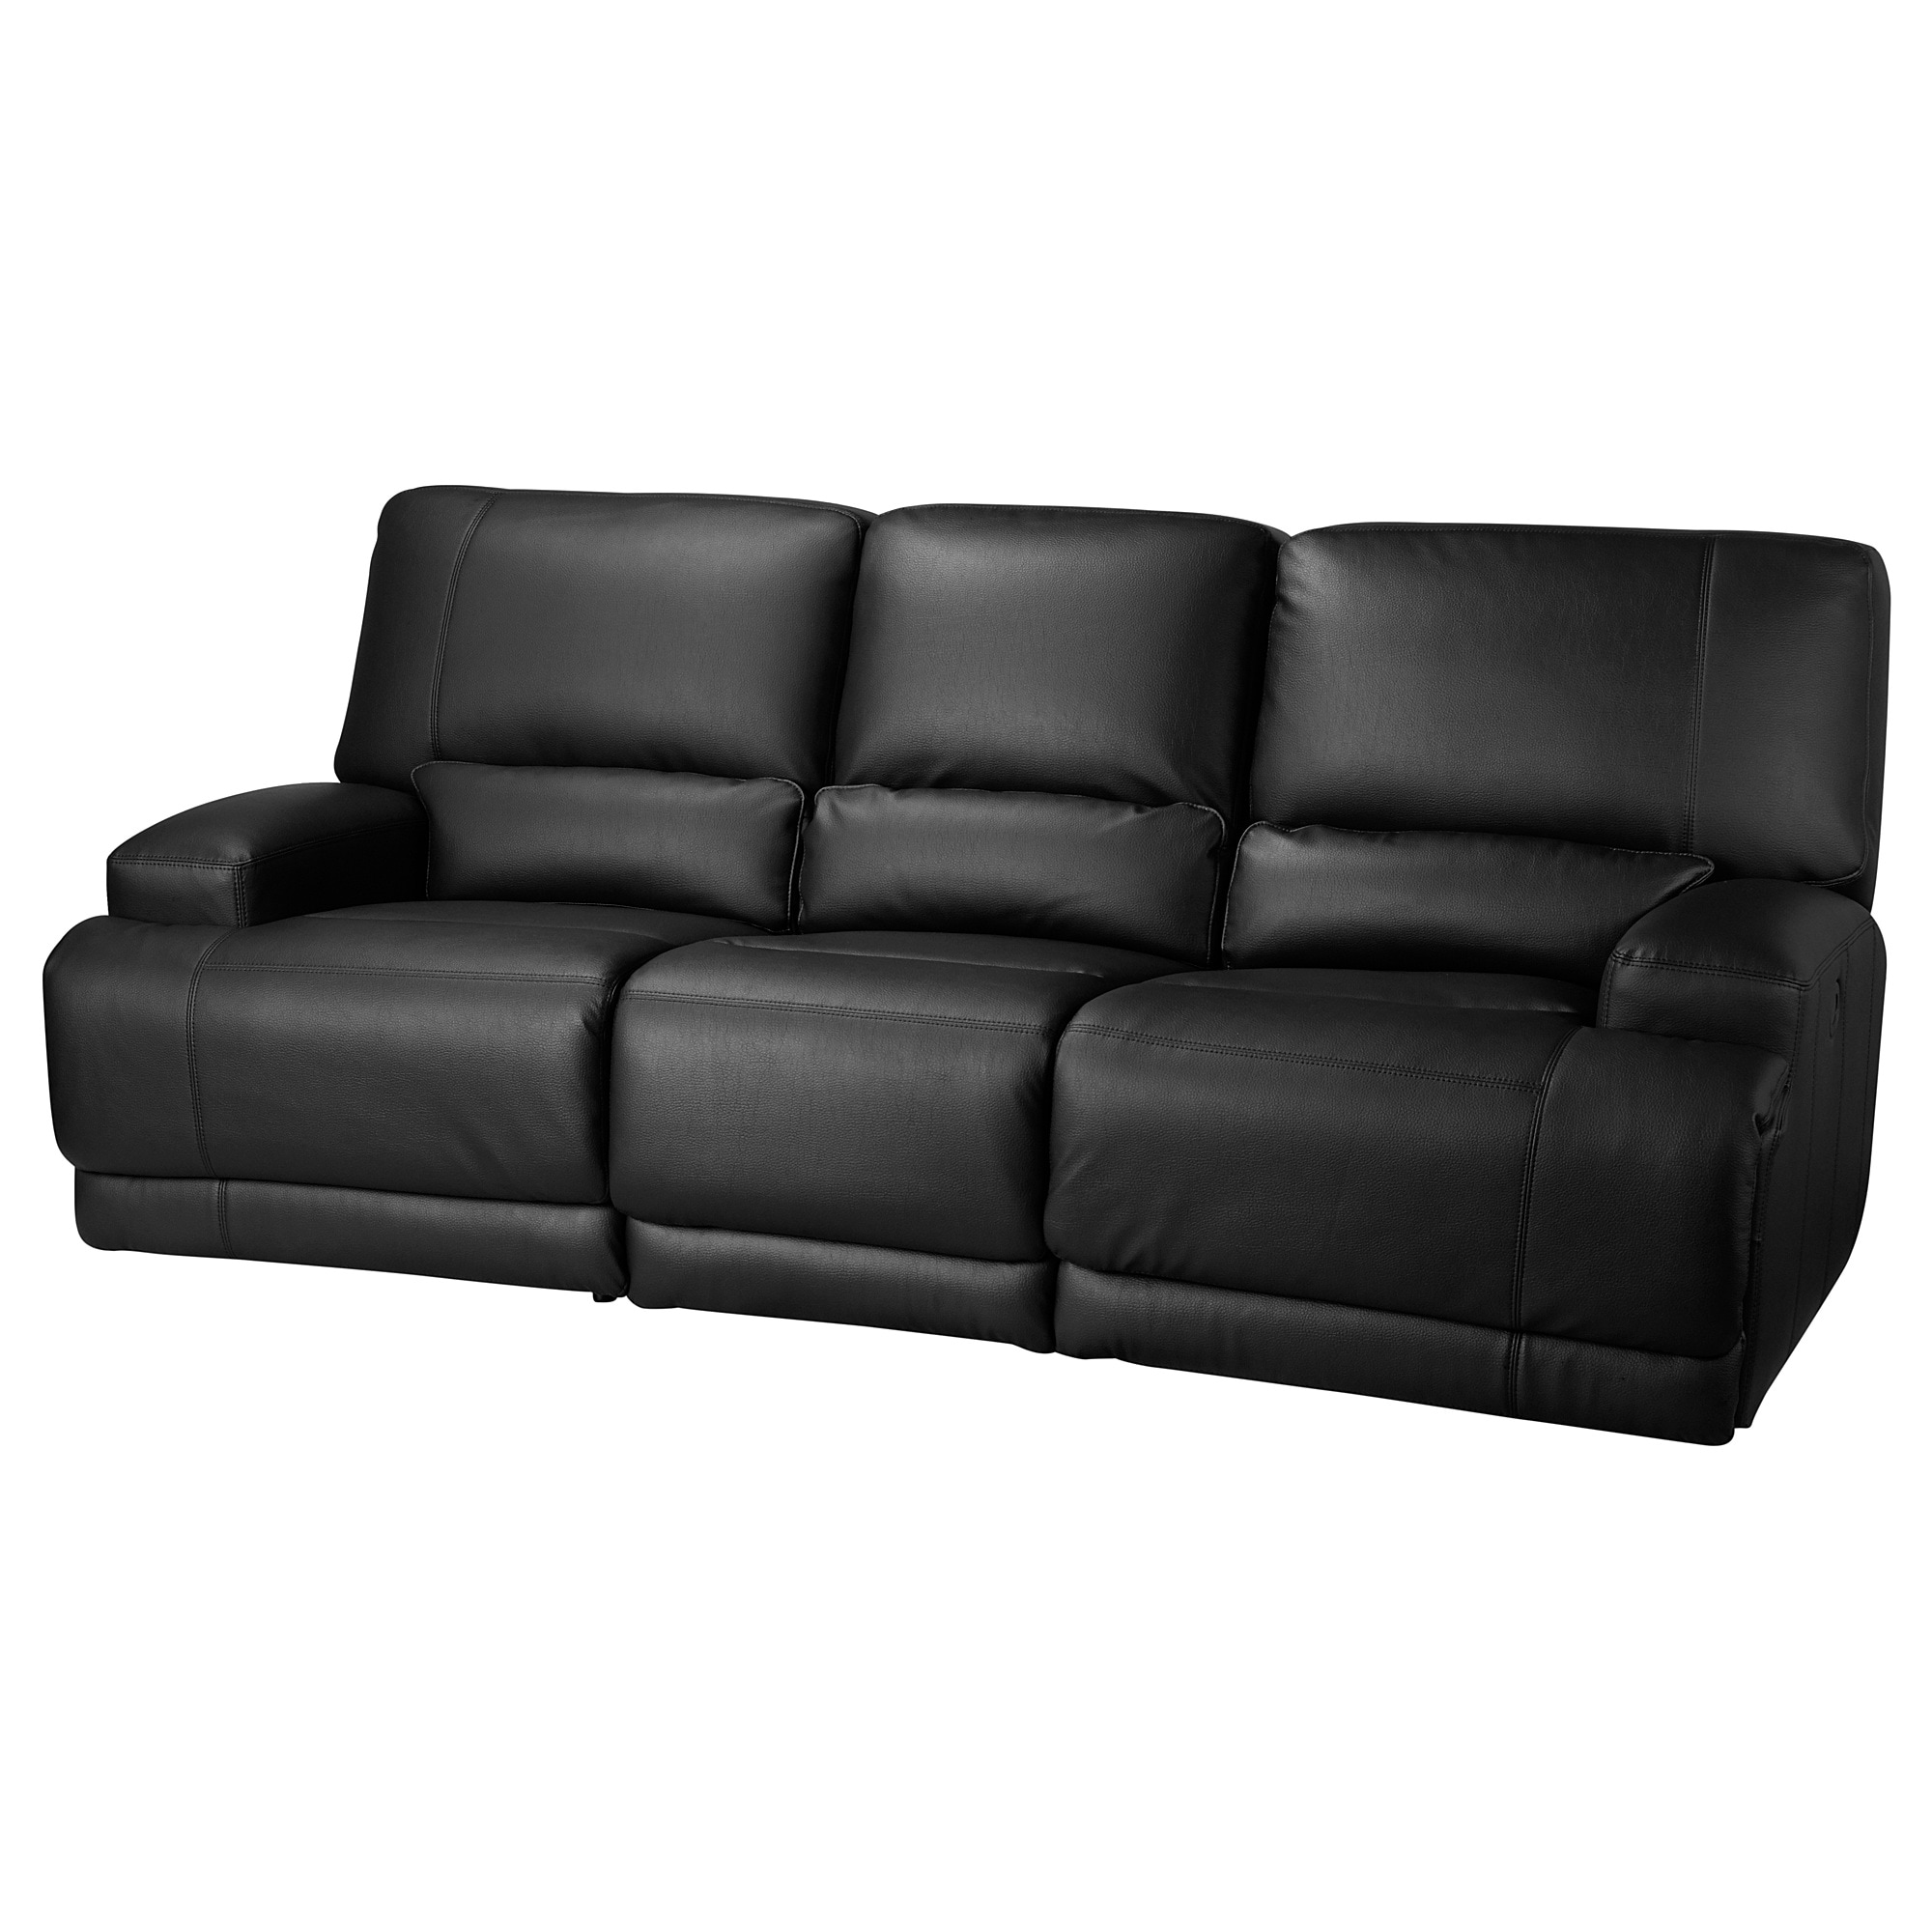 VÄnnÄs Sofa With Adjule Seat Back Murum Black